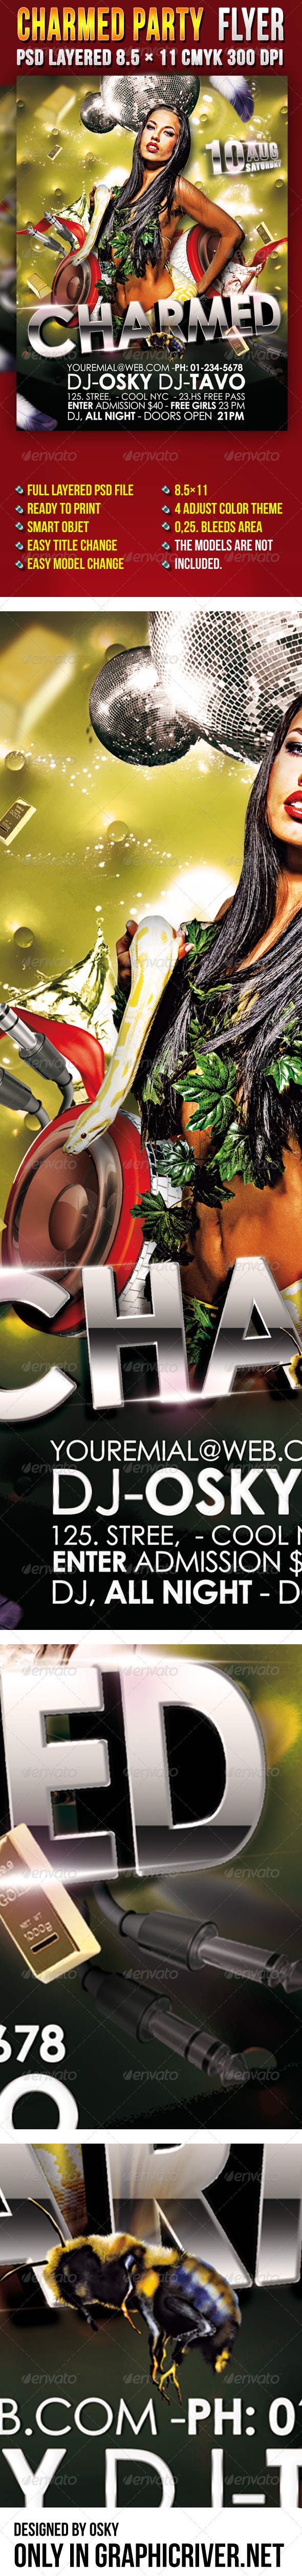 Charmed Party Flyer - Clubs & Parties Events